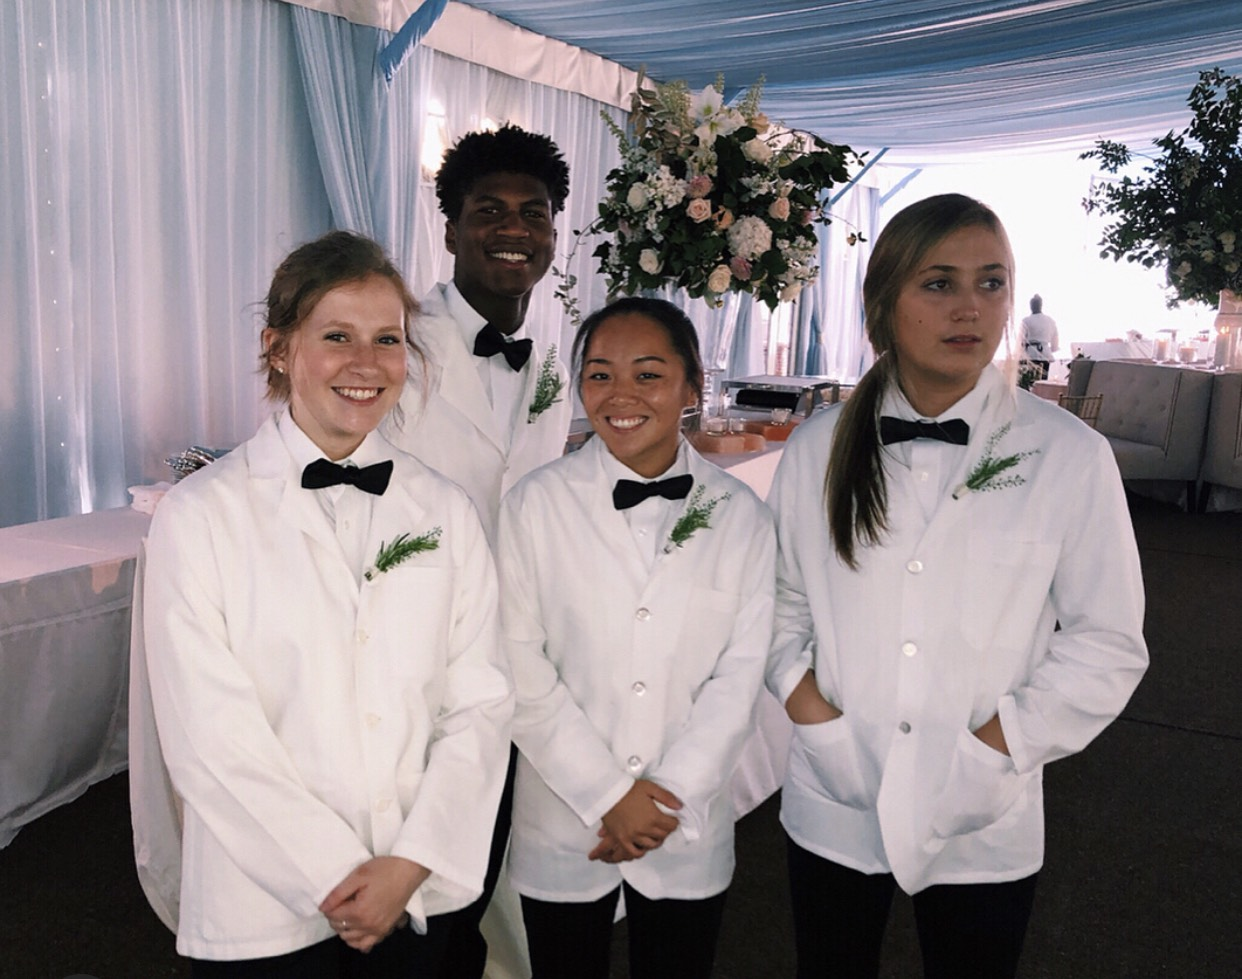 Alumni Melissa Drake, Camilla Kasper, and Georgia Smith (left to right) stand in front of senior Malachi Smith after setting up food for a wedding.